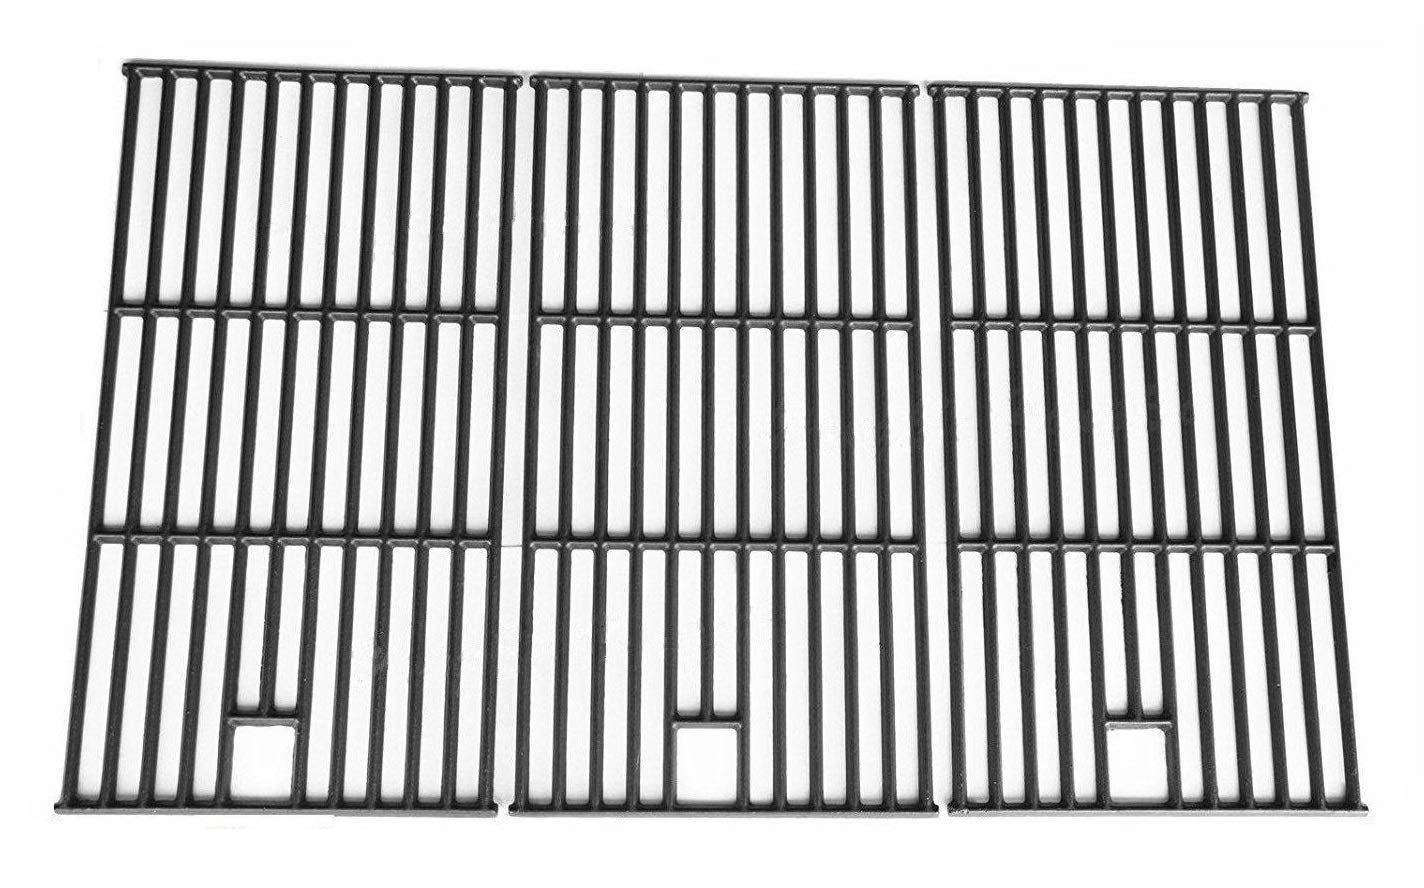 Hongso PCE223 Matte Cast Iron Cooking Grid Replacement for Brinkmann 810-8500-S, 810-8501-S, 810-8502-S; Charmglow 720-0396, 720-0536 and Others, Set of 3